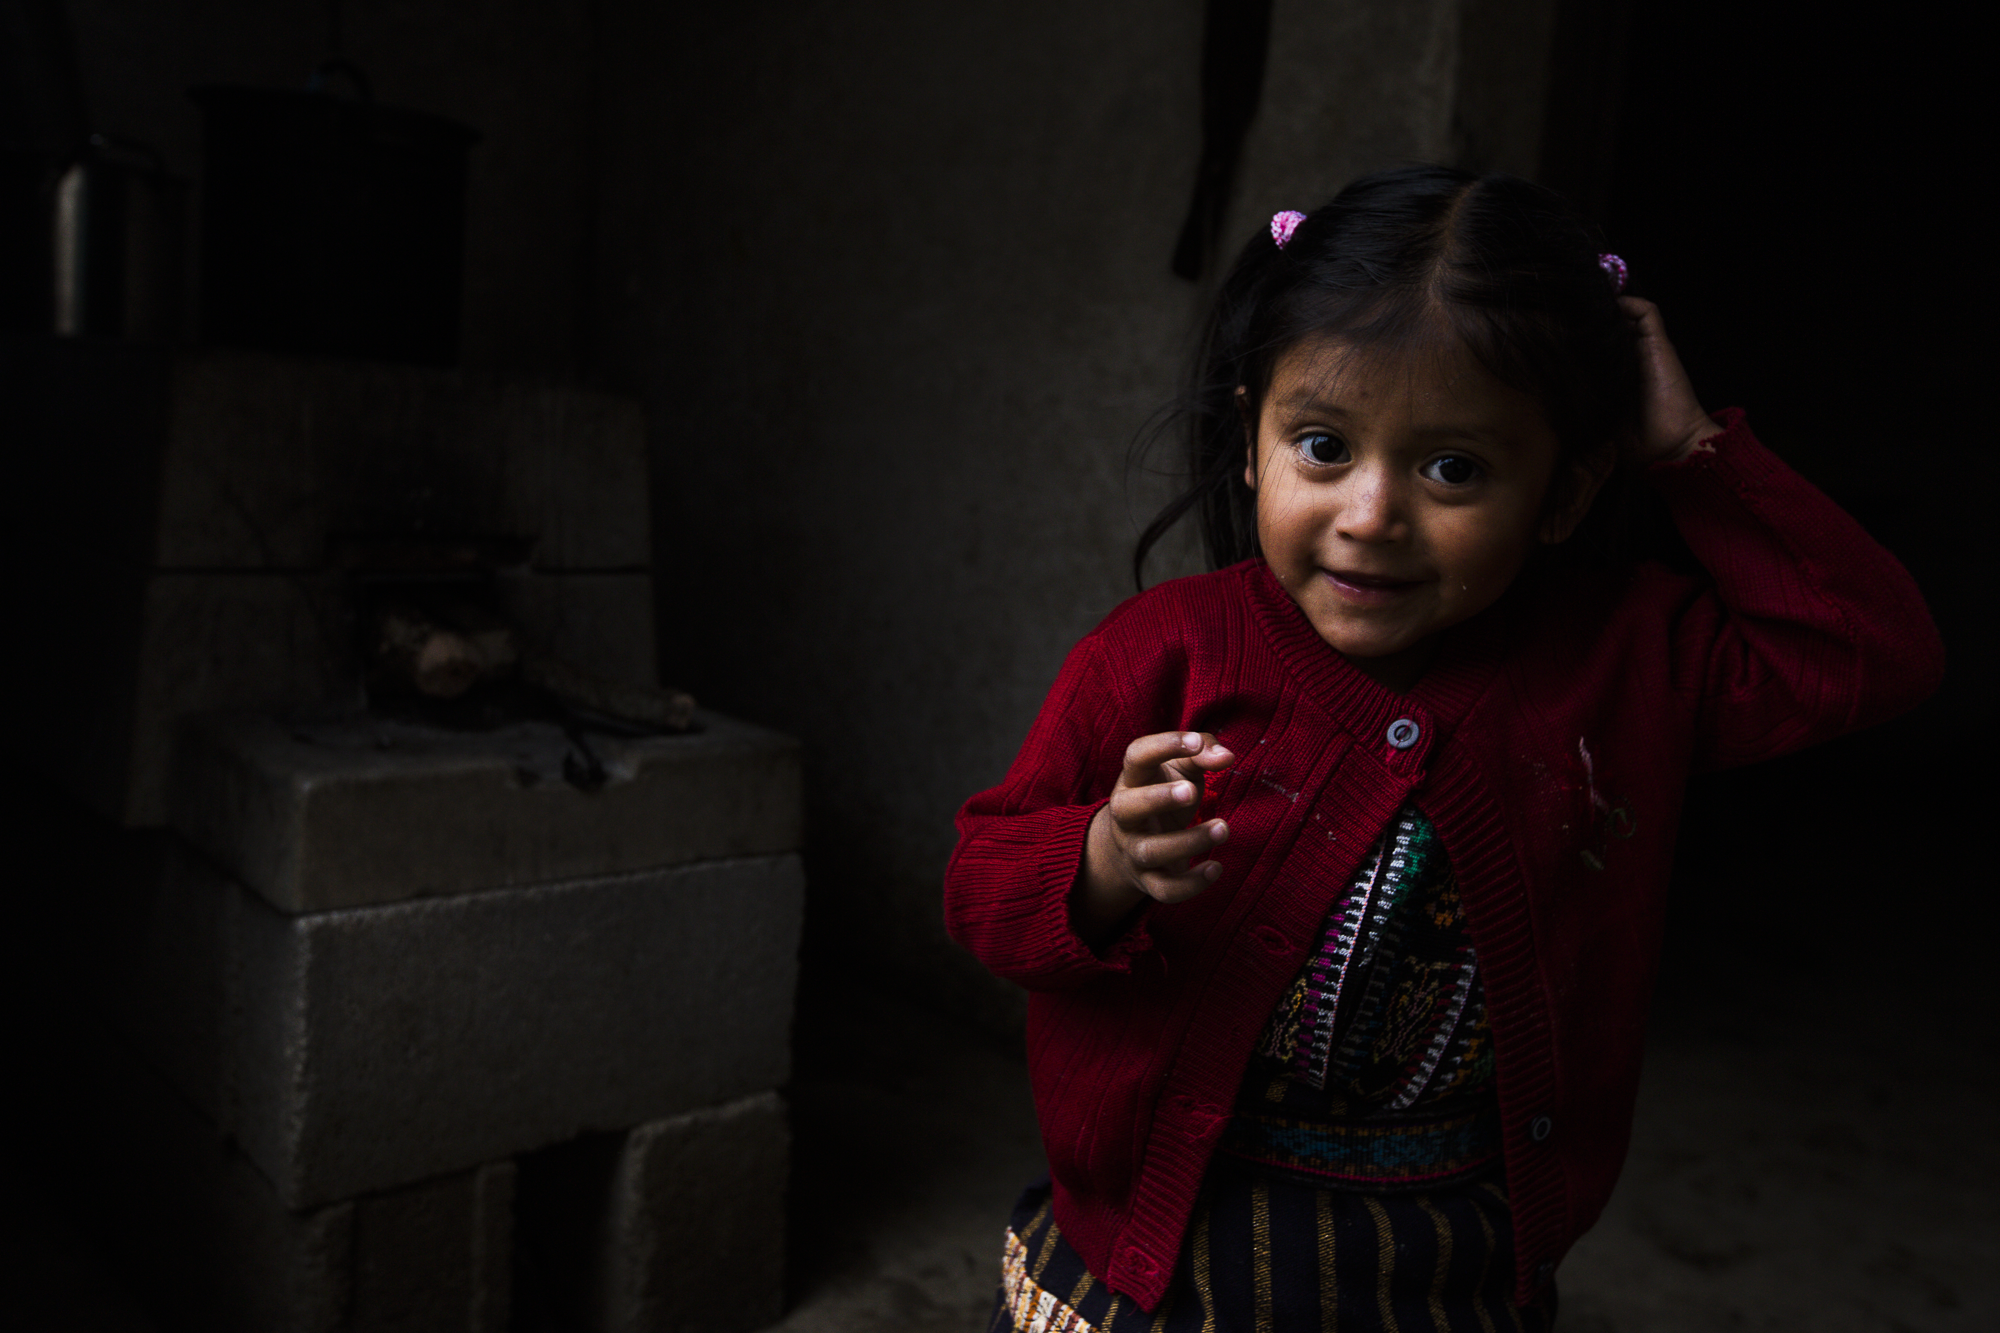 A little girl plays outside of her house with her family in Peña Blanca, Guatemala.